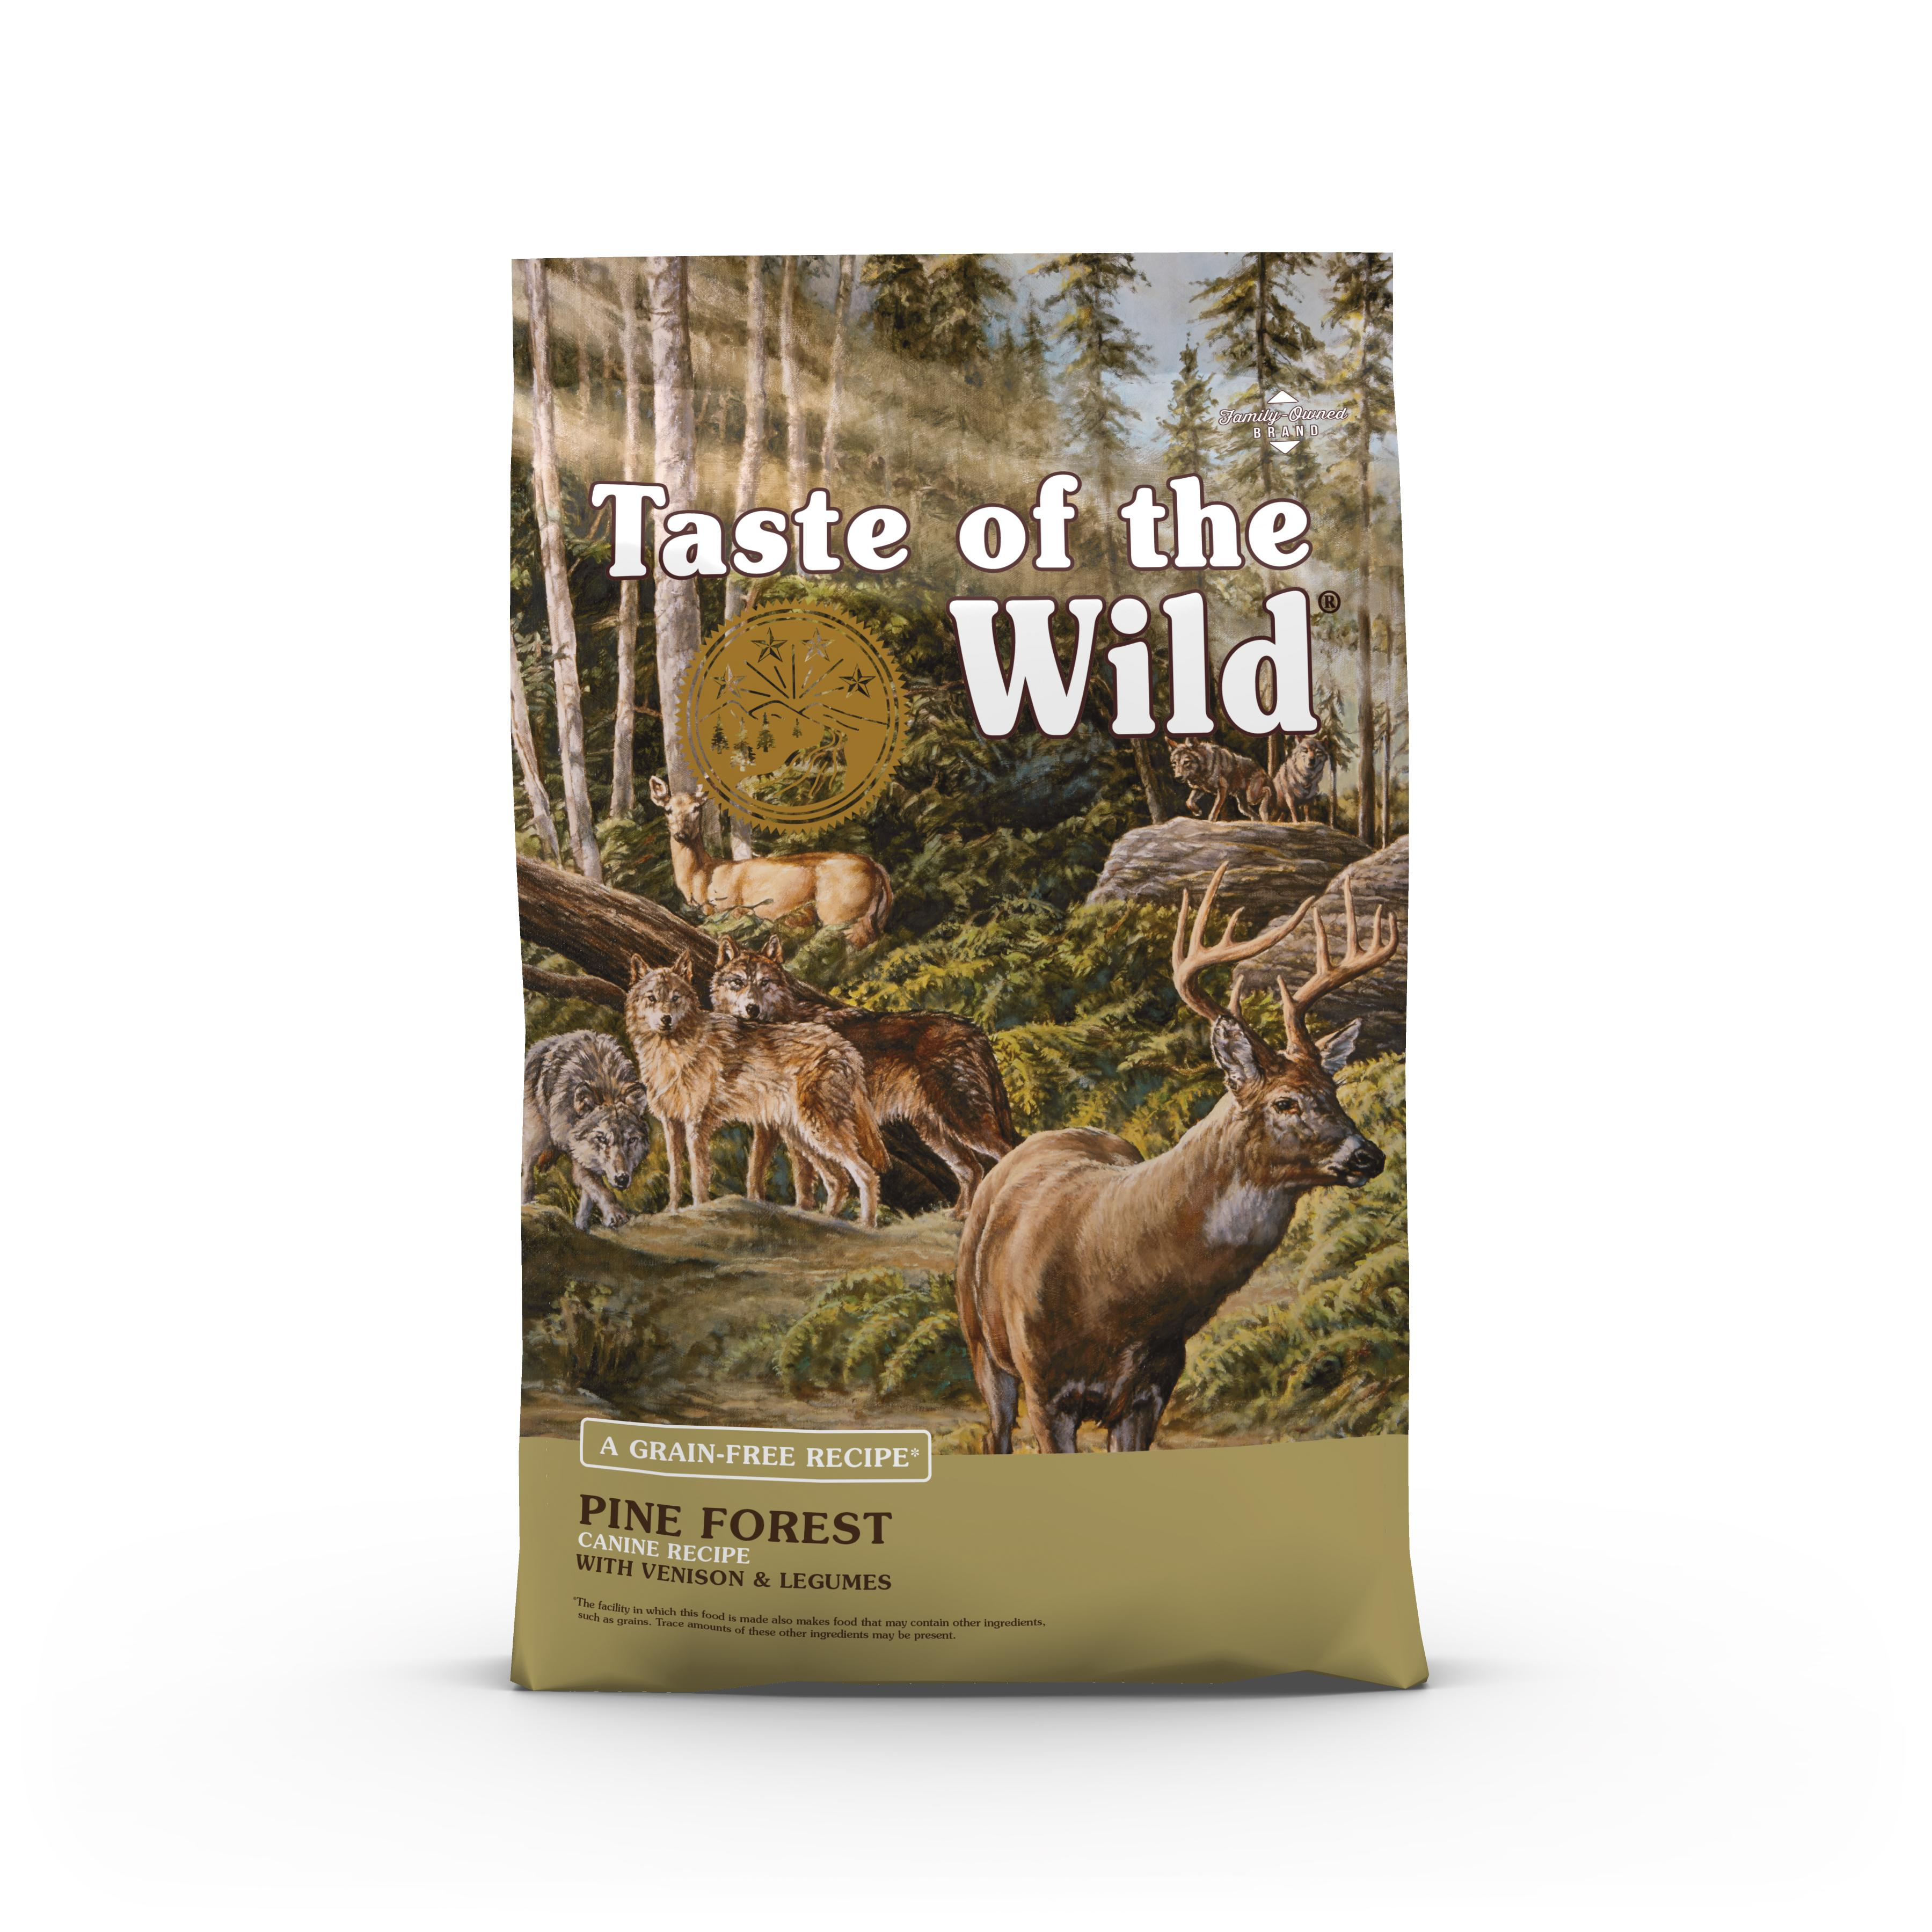 Taste of the Wild Pine Forest Grain-Free Dry Dog Food Image